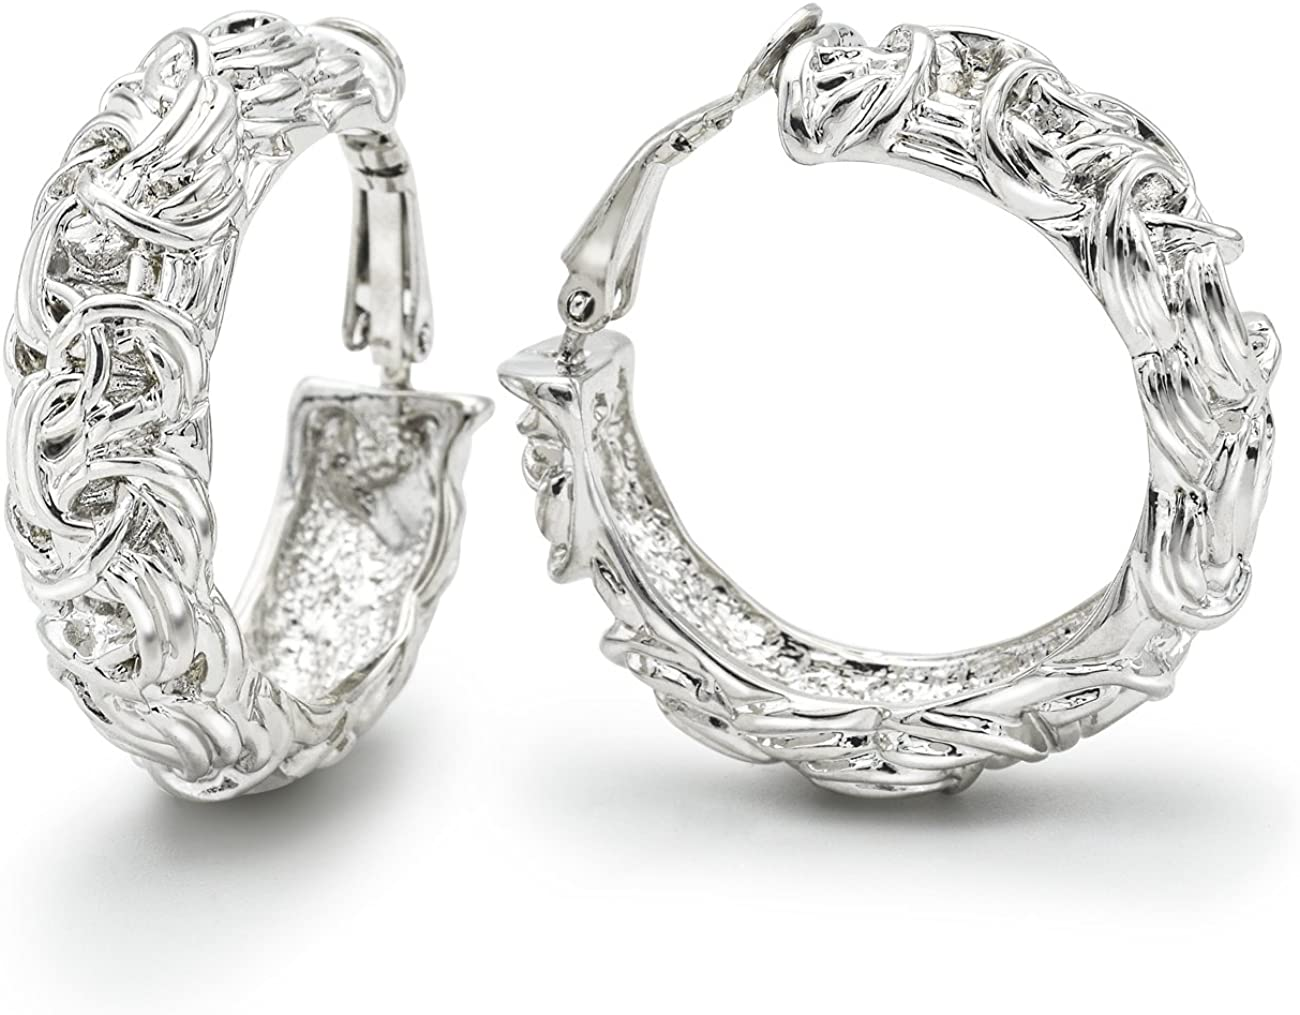 Sparkly Bride Clip on Earrings Wide Hoop Byzantine Knot Fashion Ornate Rhodium Plated